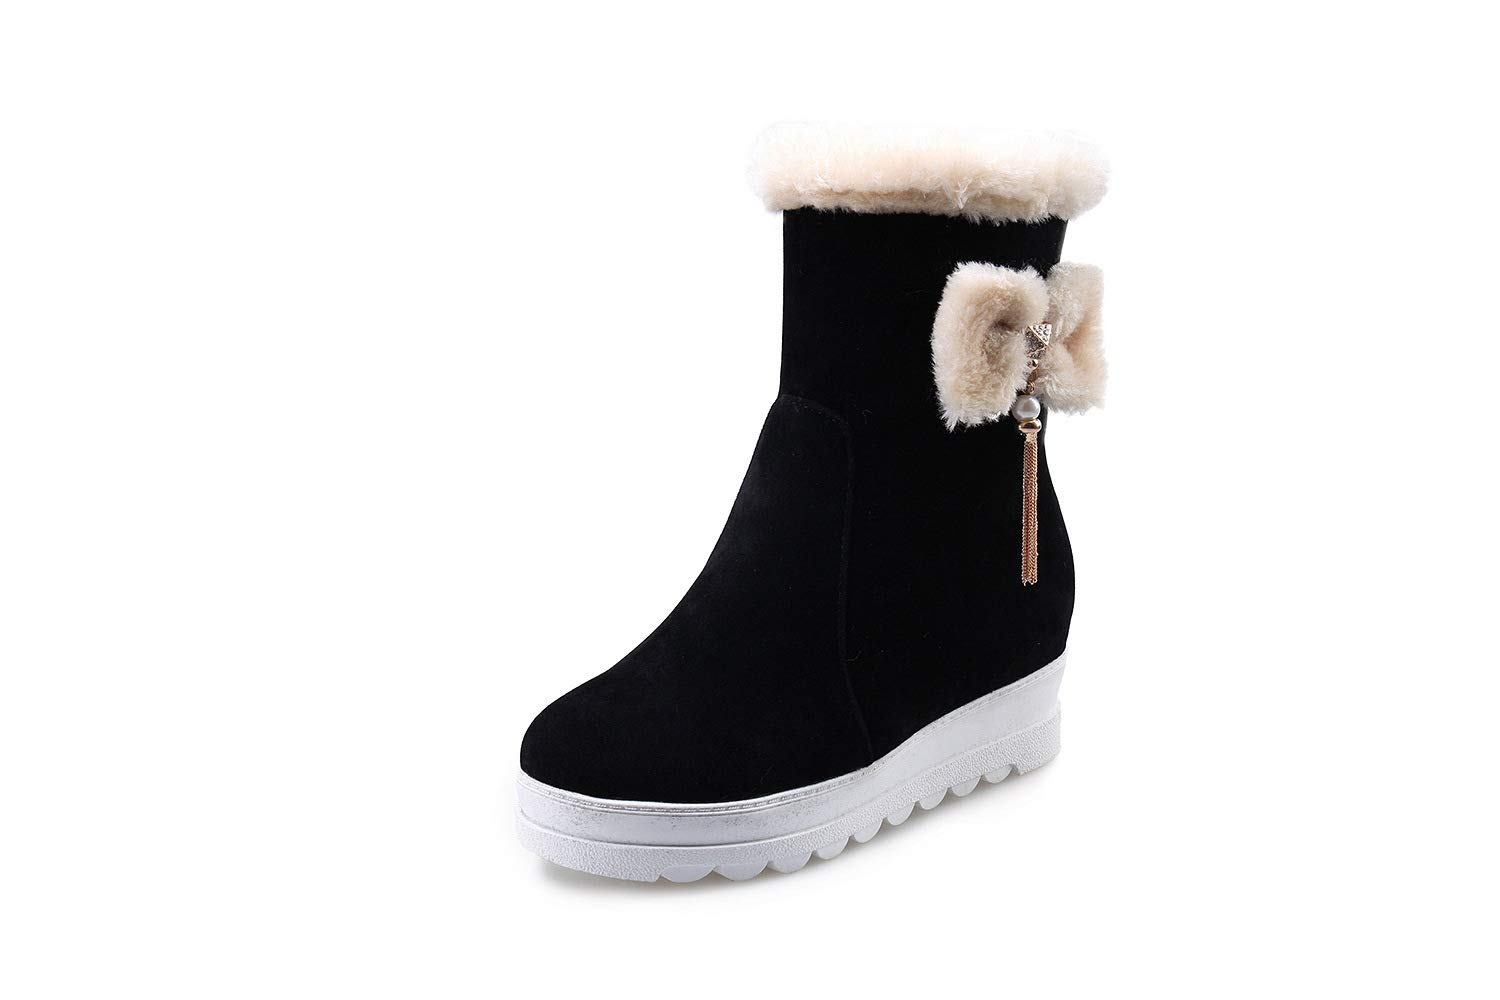 DETAIWIN Women Classic Ankle Boots Suede Fur Lined Slip On Warm Outdoor Winter Snow Boots